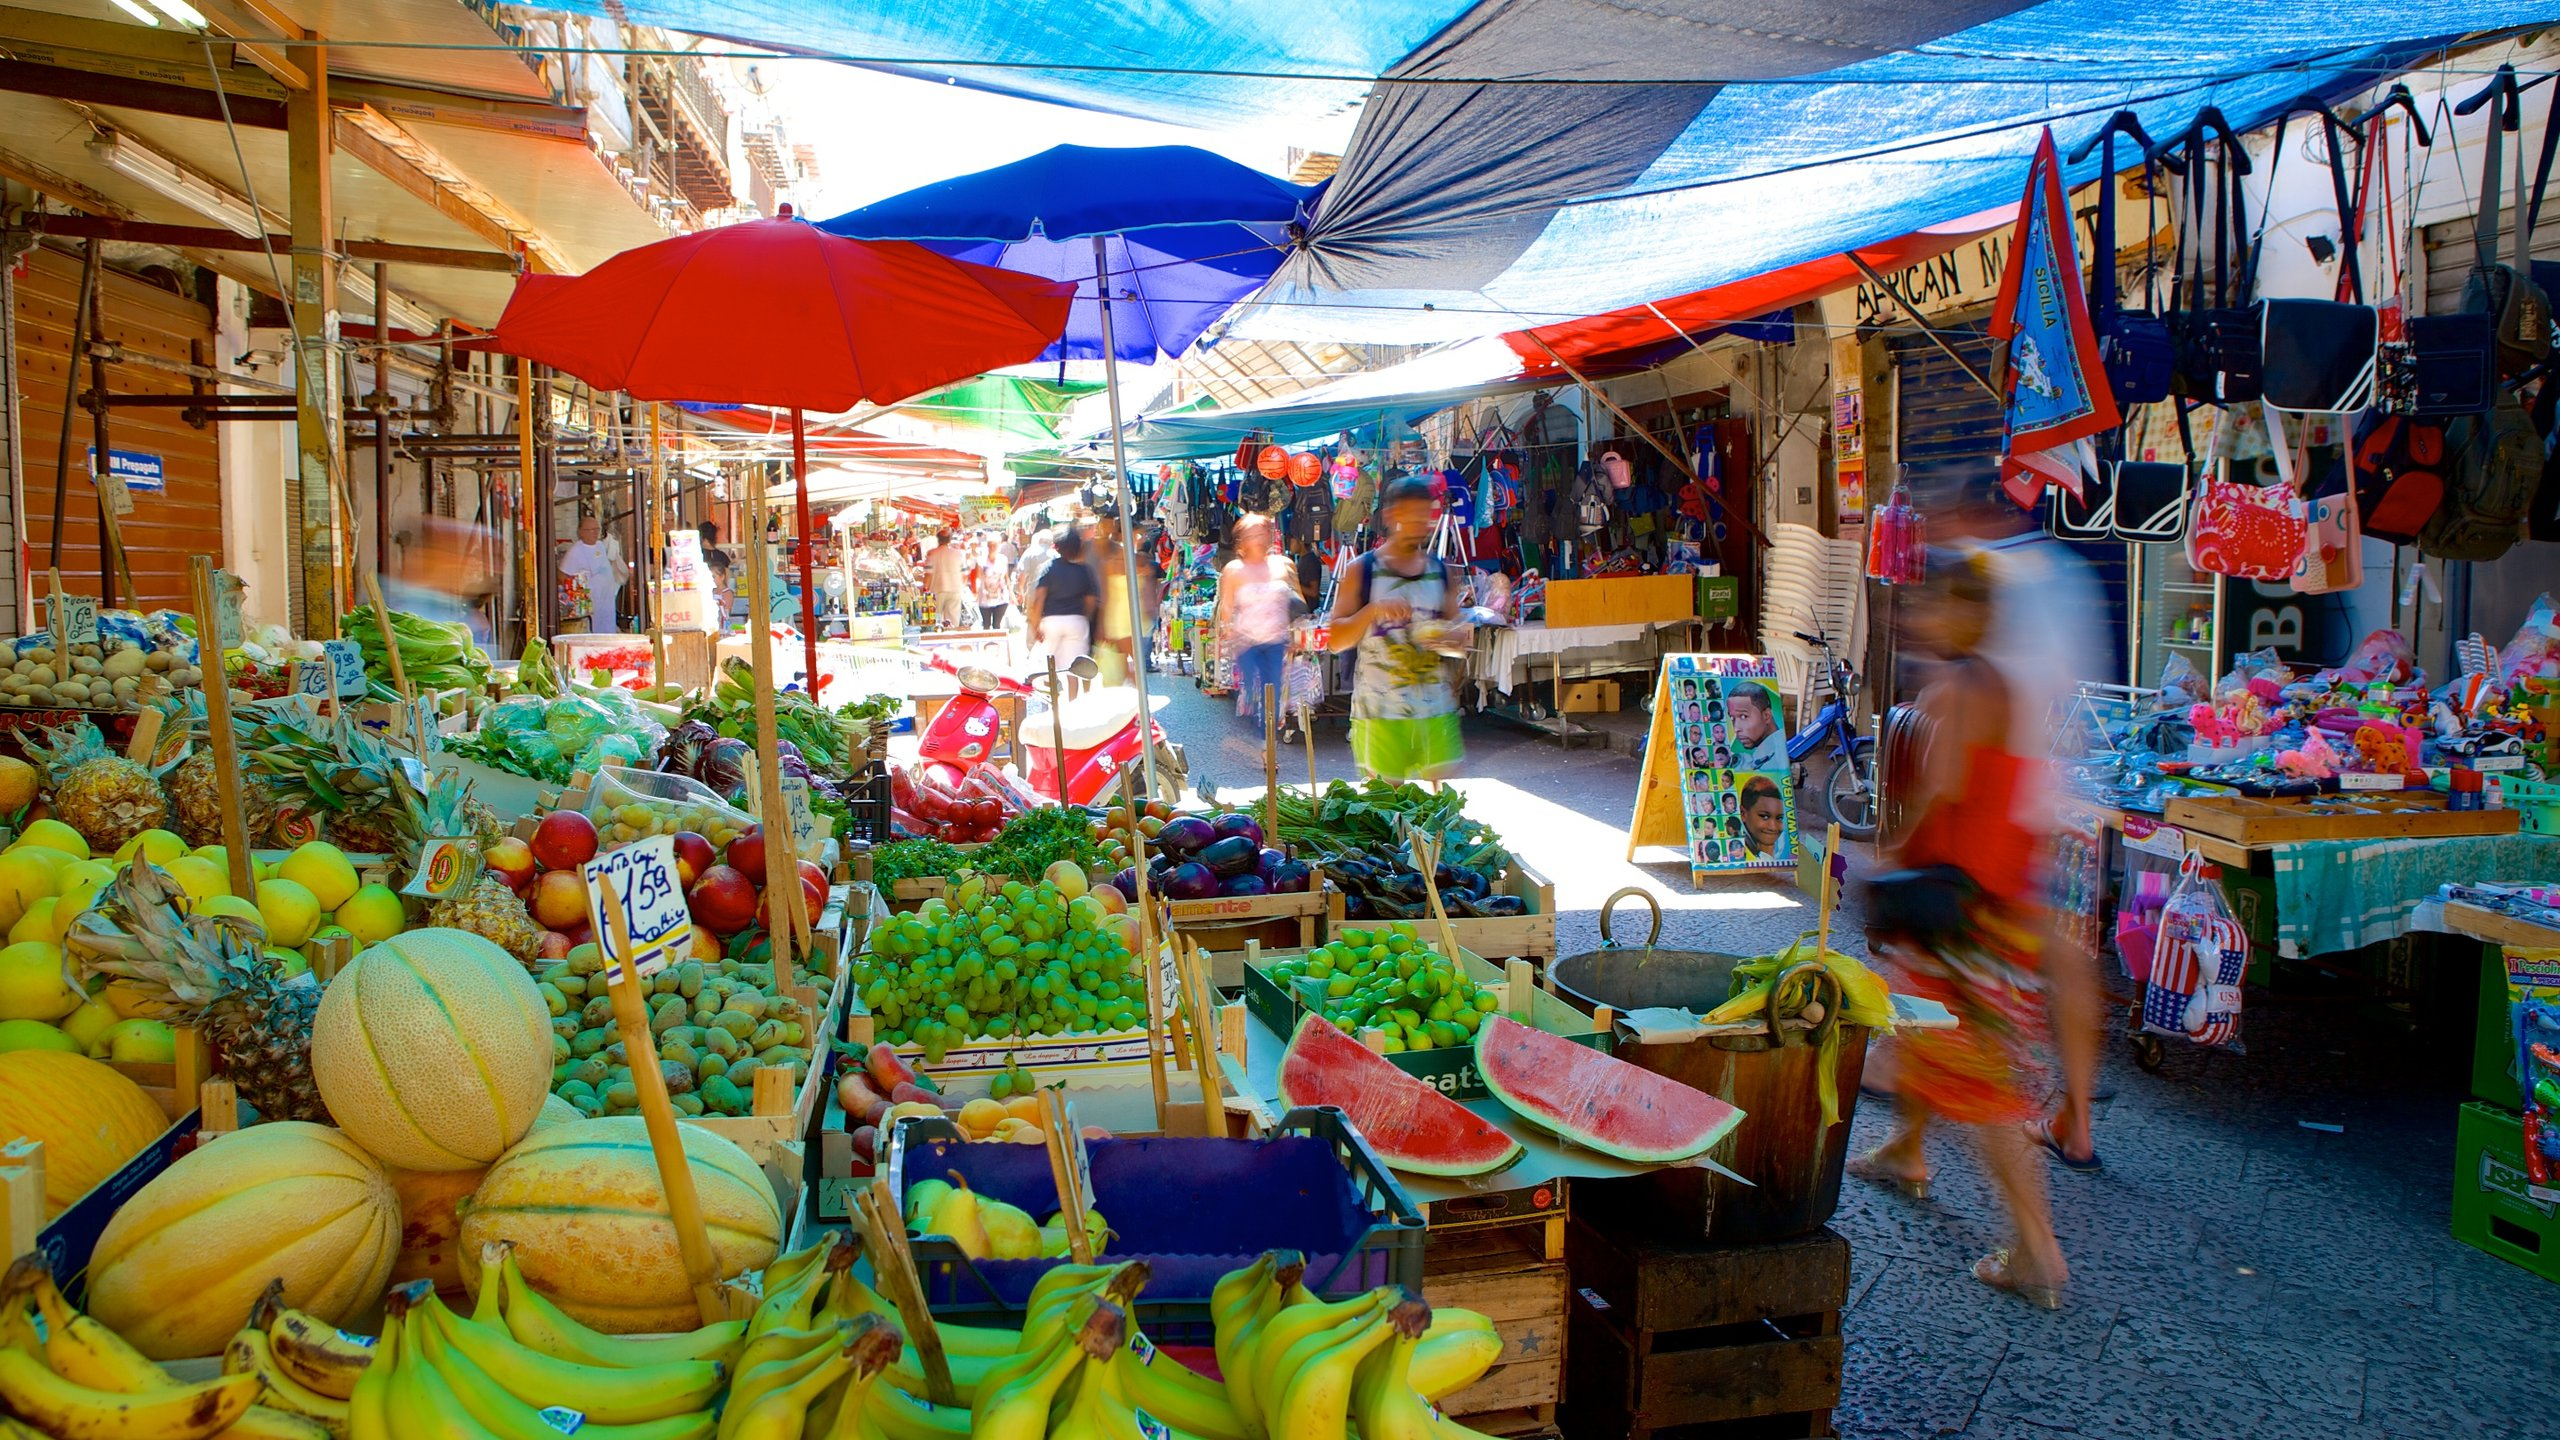 Buy freshly caught fish, eat Sicilian specialties and search for vintage clothes at a market that has been serving Palermo's residents for centuries.